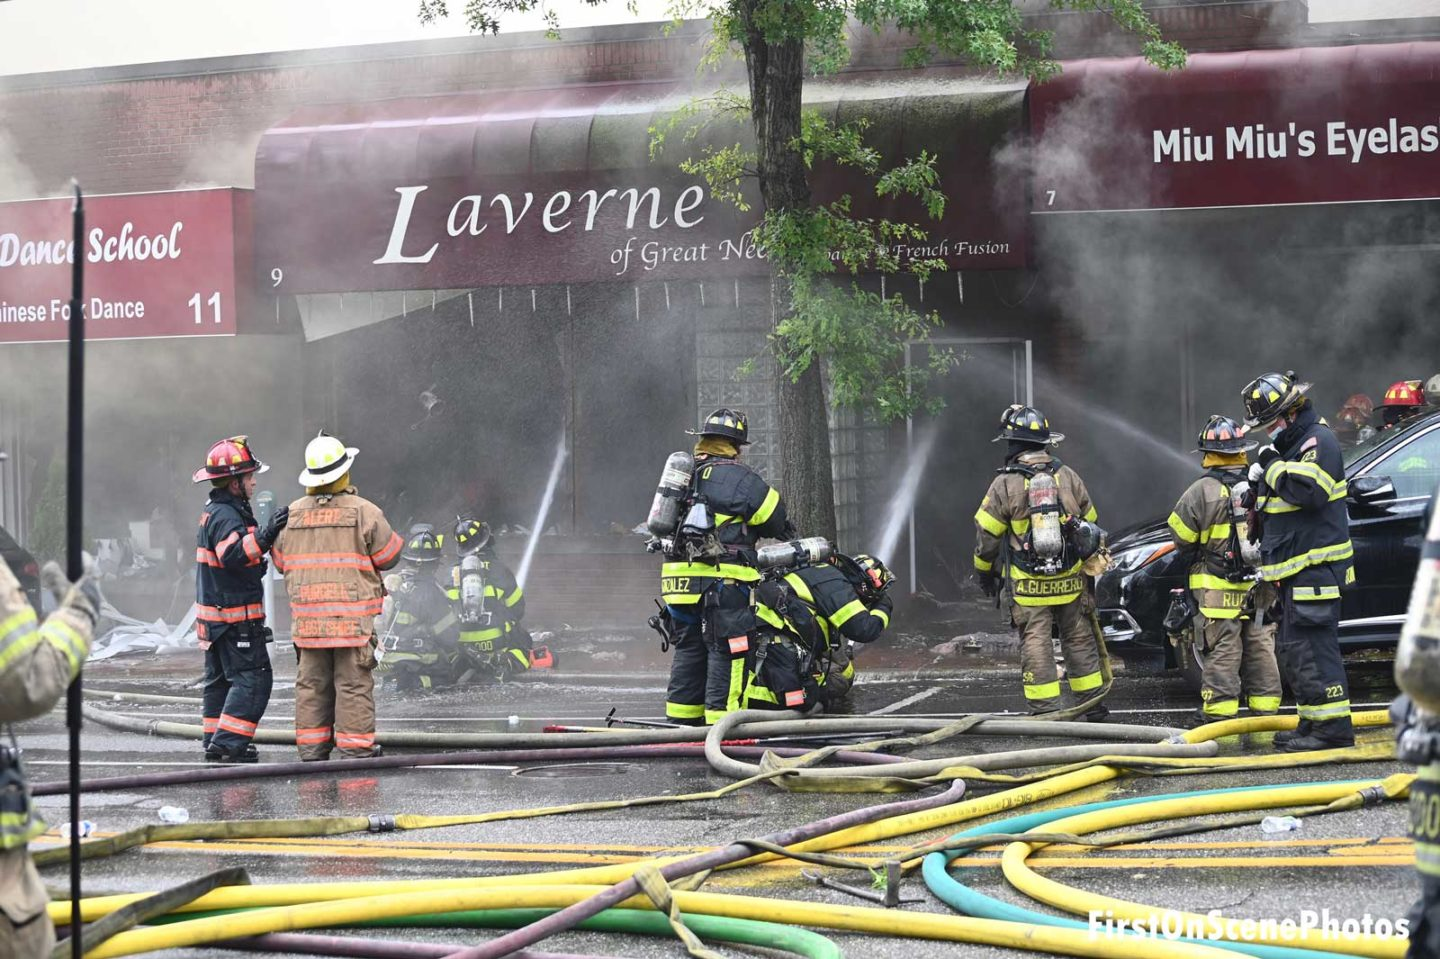 Firefighters work at the scene of a fire that destroyed a row of businesses on Long Island